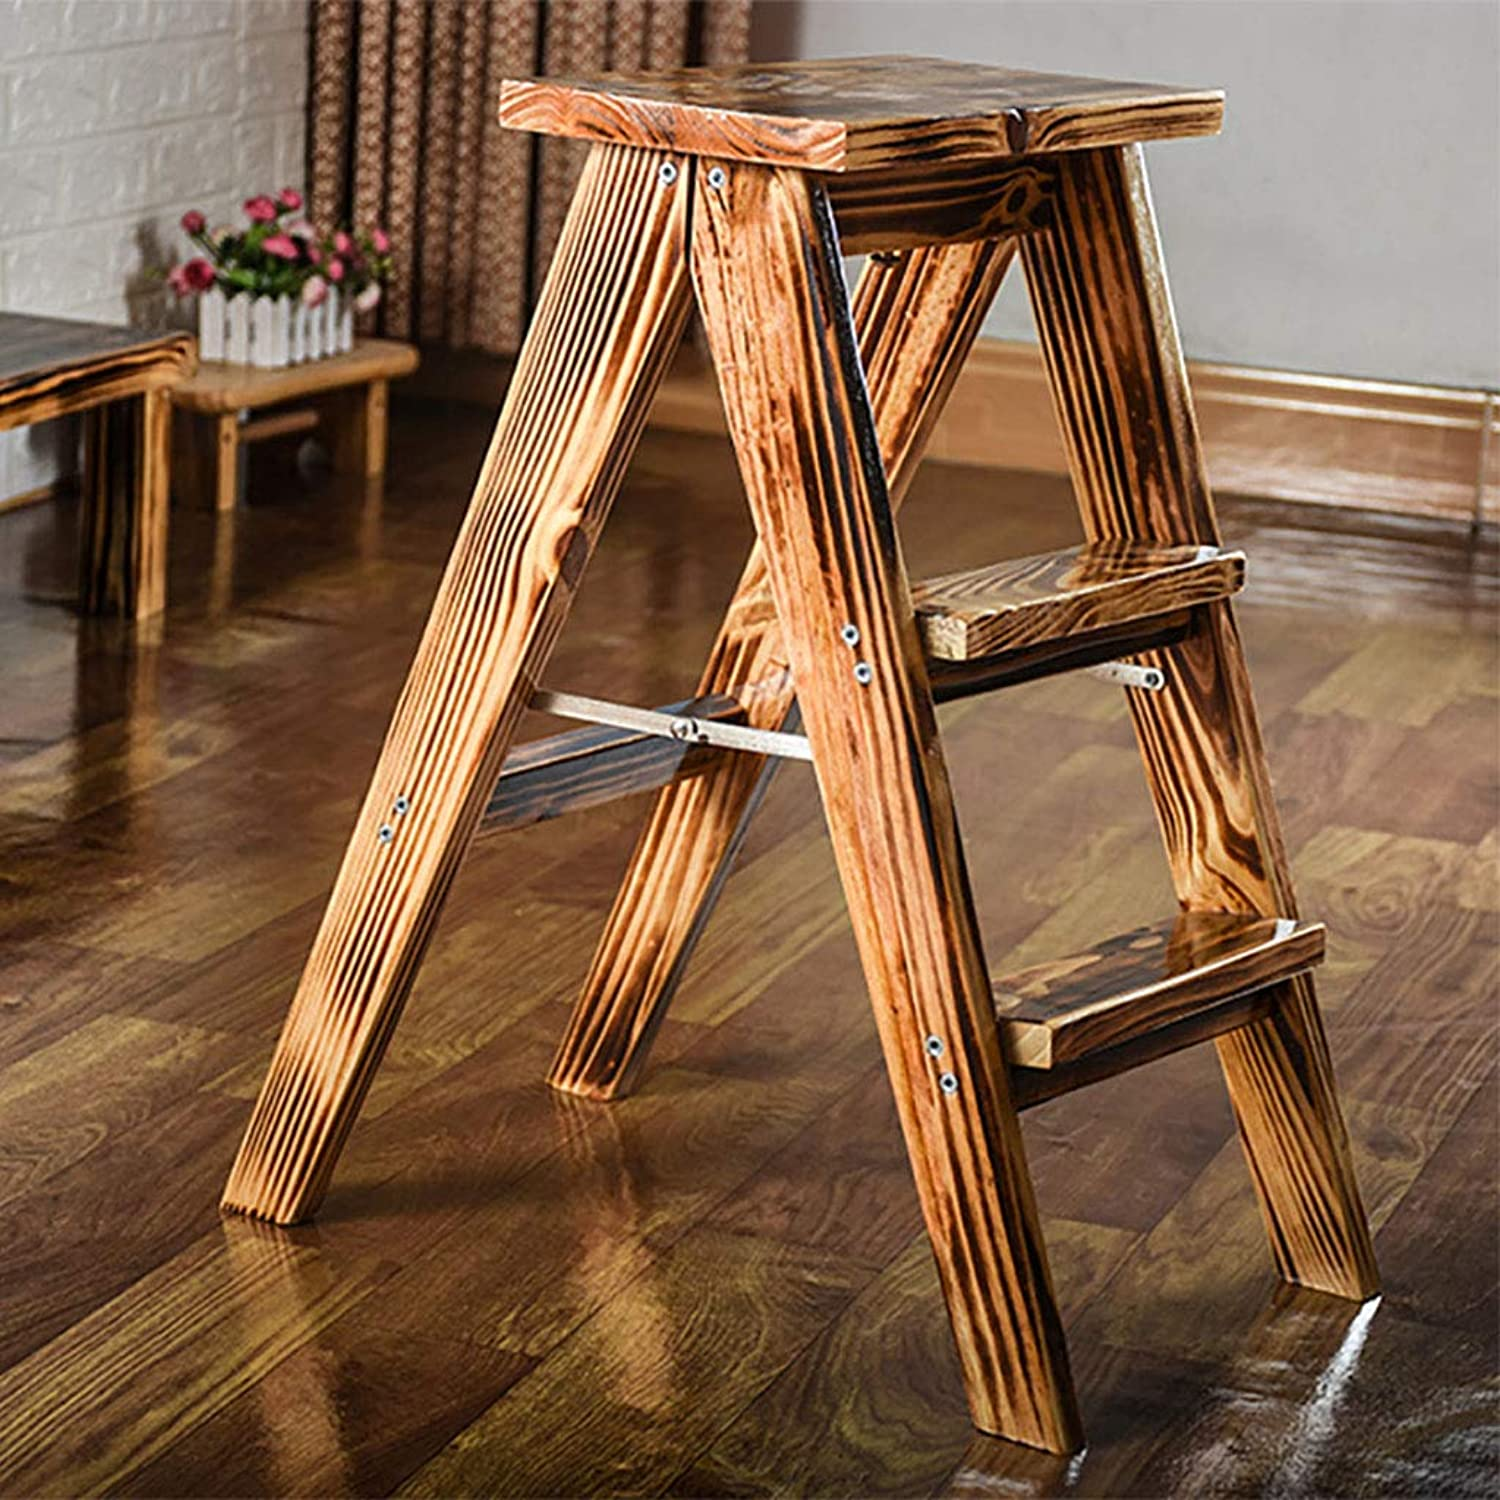 GAIXIA-Ladder stool Multifunctional Folding Ladder Stool Stairs Solid Wood Portable Home Desktop Kitchen (color   B)